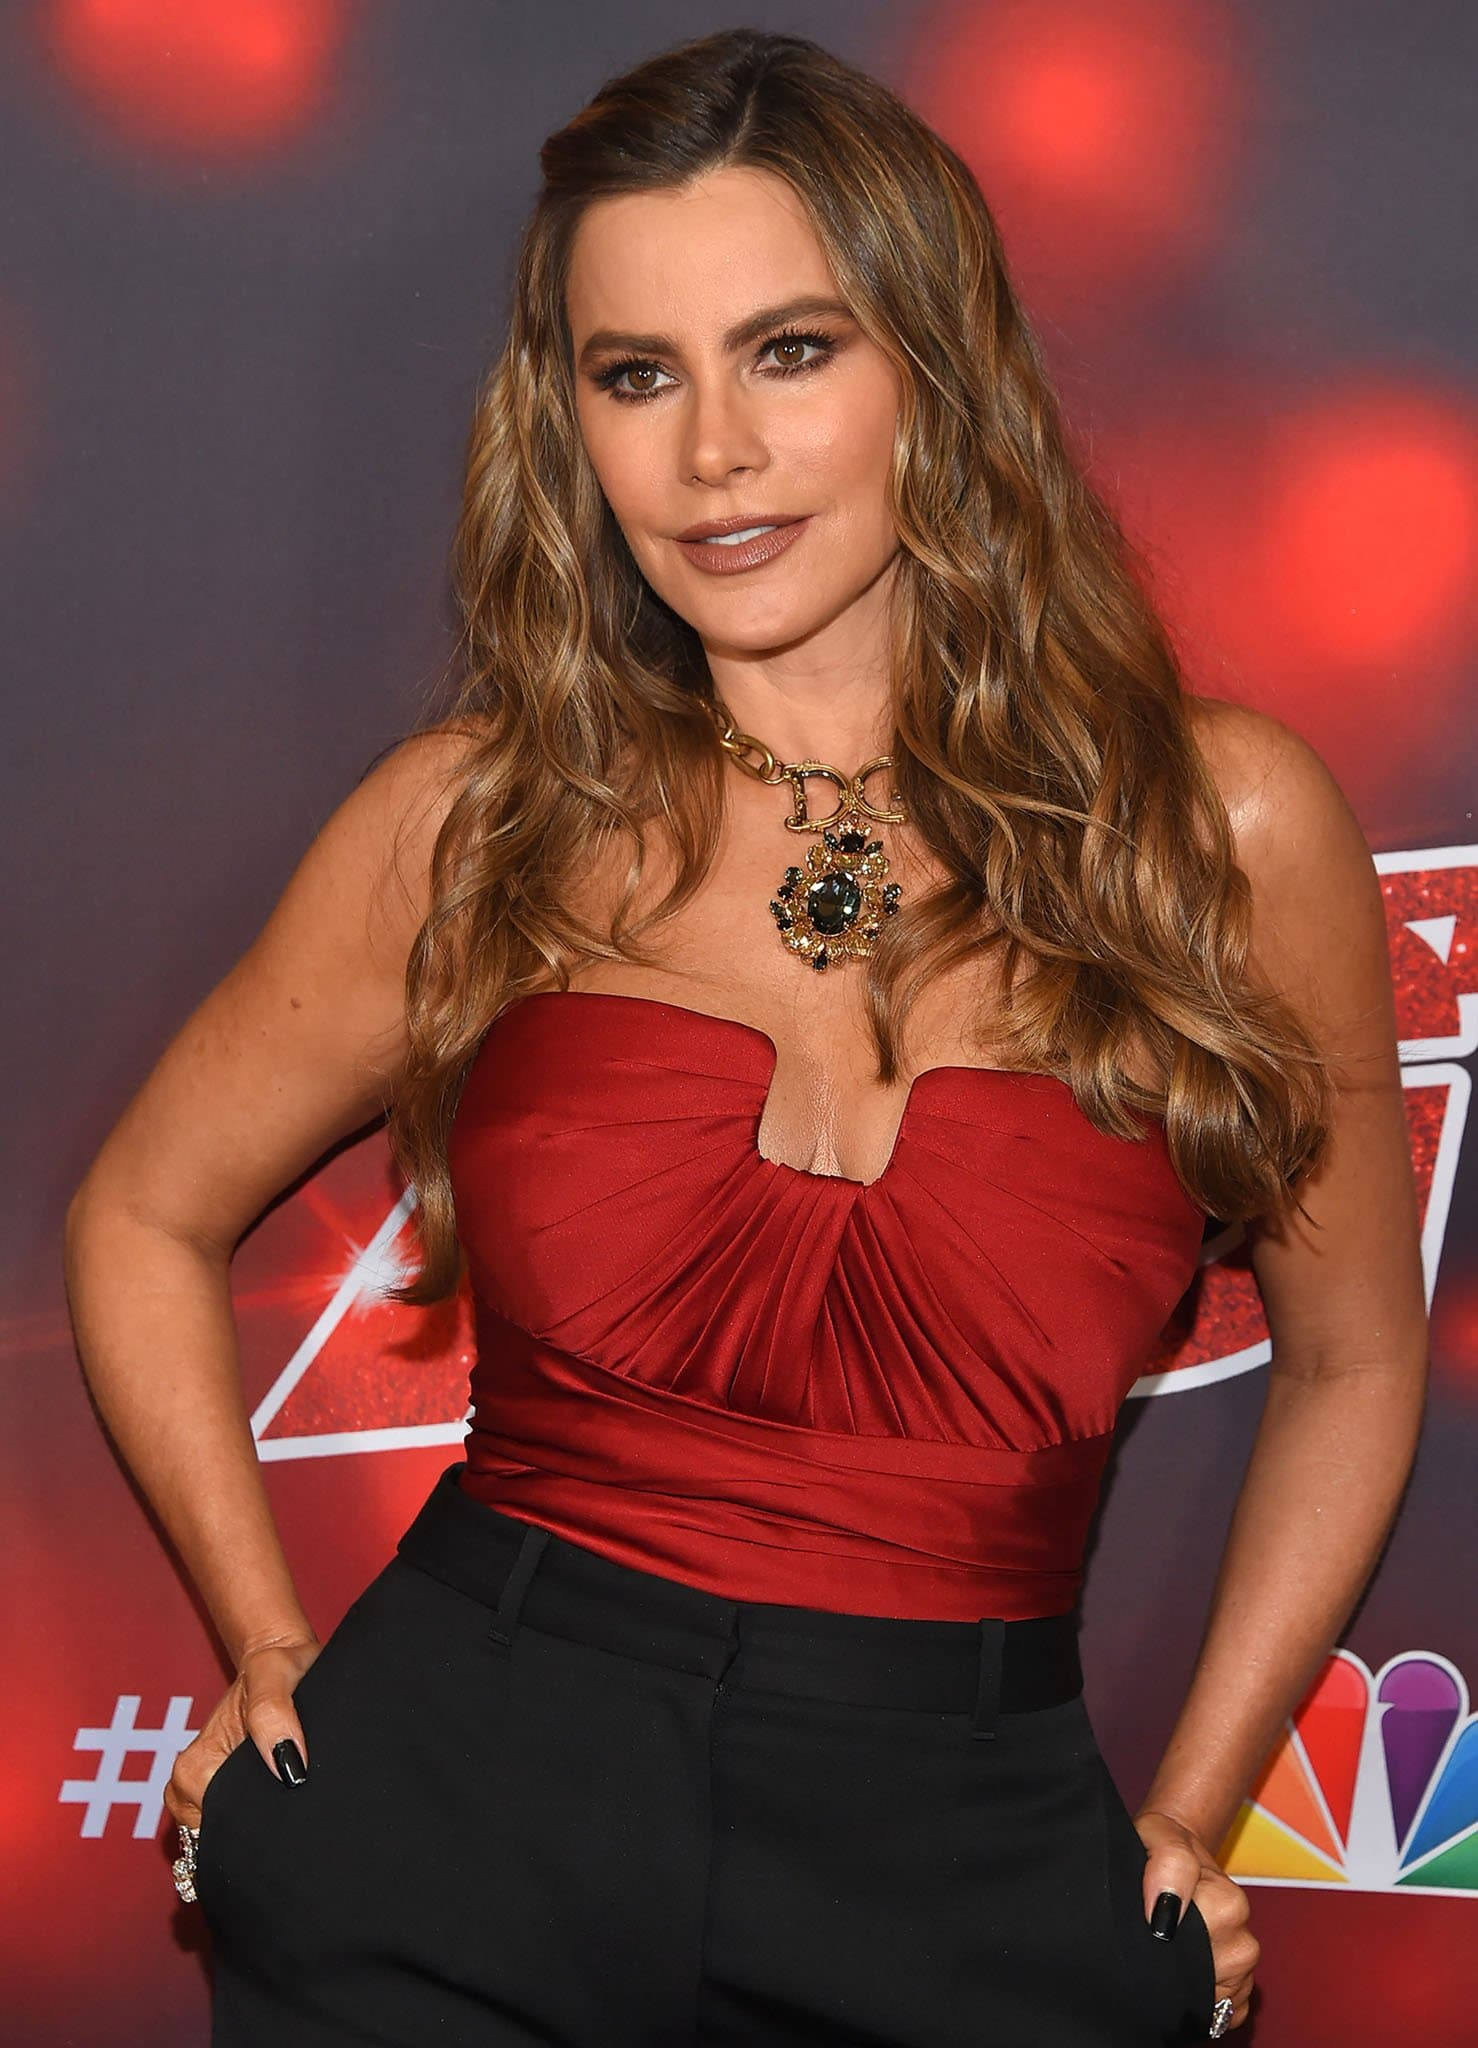 Sofia Vergara styles her hair in loose curls with the front part clipped to the side and wears brown eyeshadow with matching lipstick